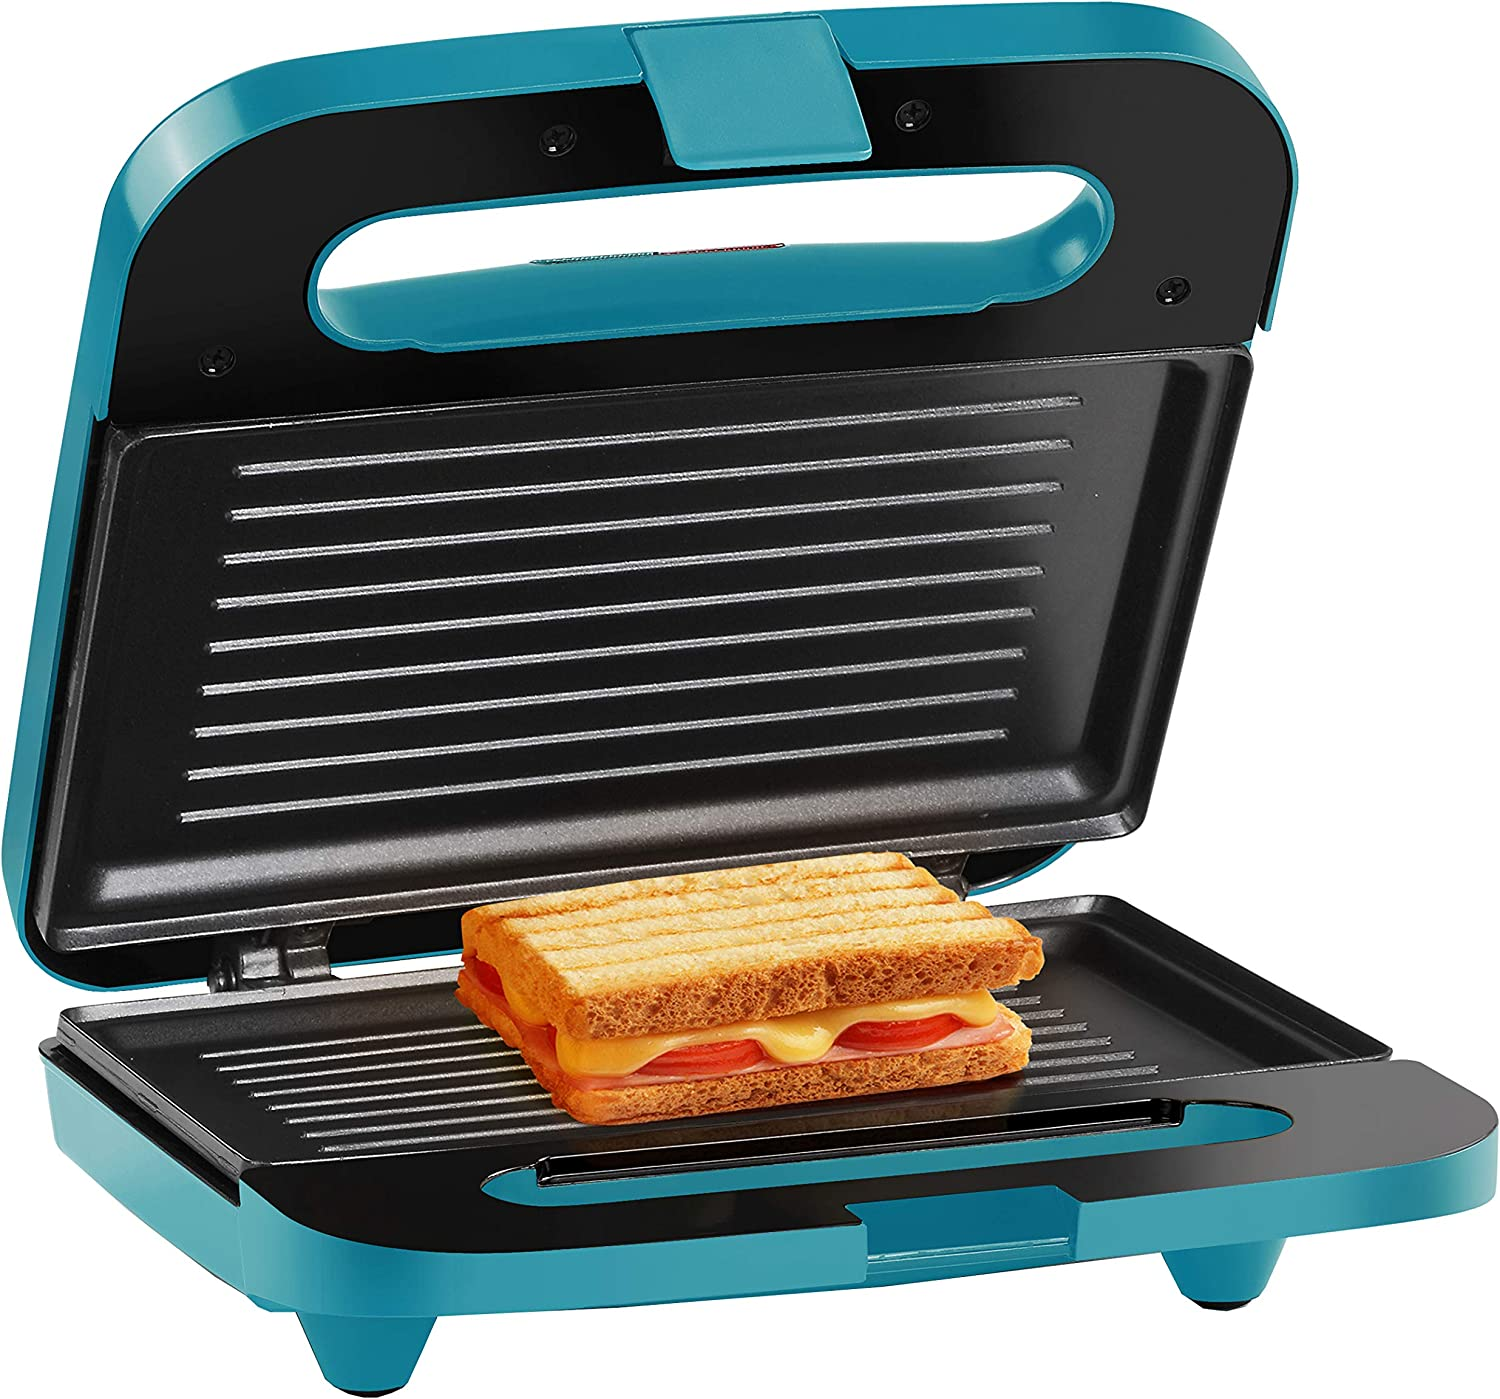 Holstein Housewares HH-09125003E 2 Section Sandwich Grill – Teal